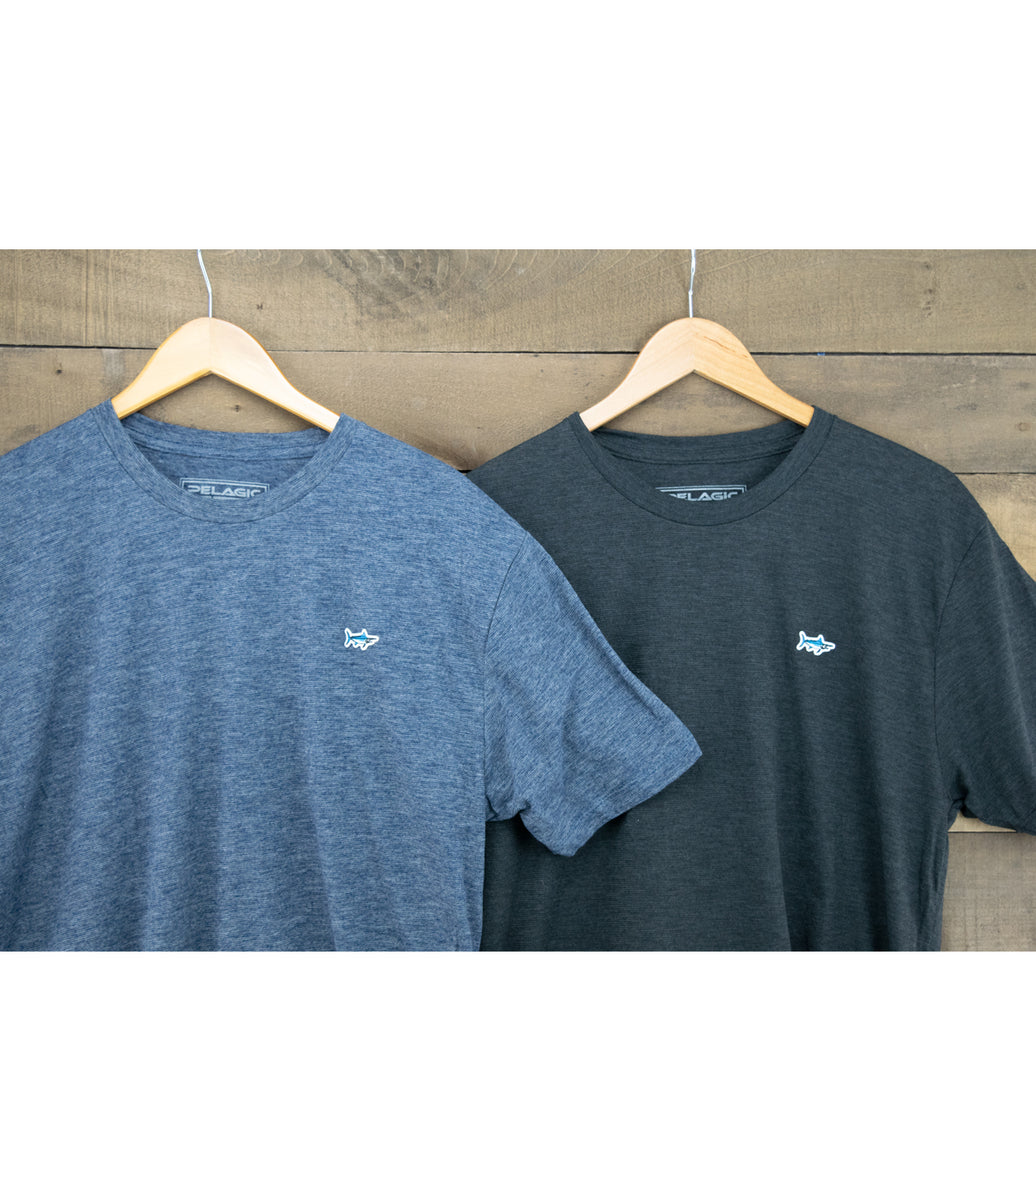 Black Label Dockside T-shirt Big Image - 3